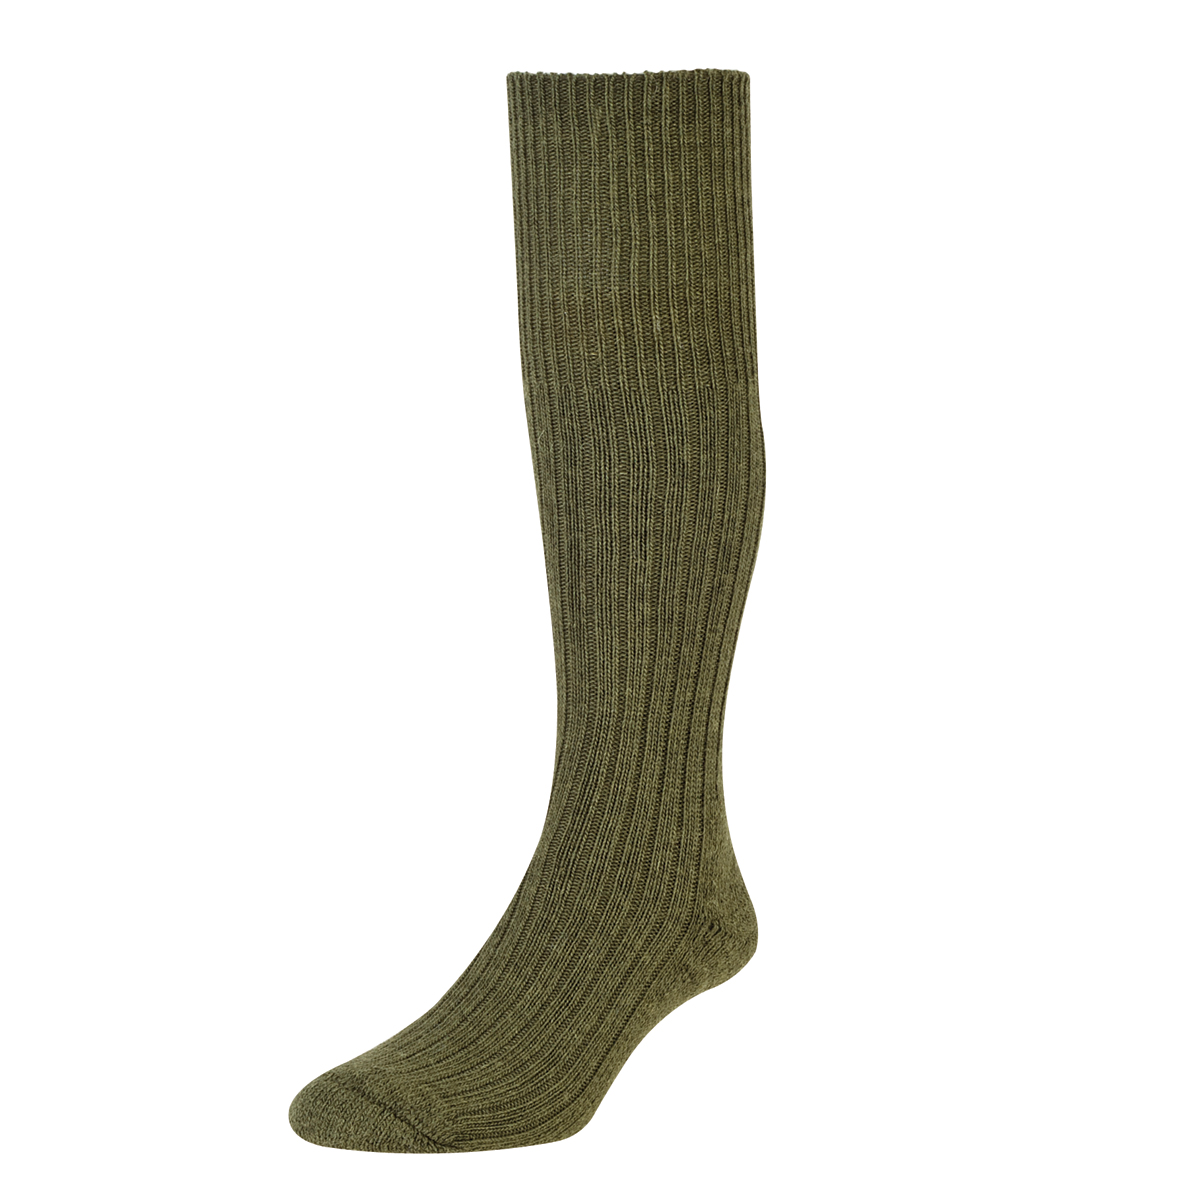 HJ Hall Commando Wool Socks, 11-13 UK Olive 12 pairs HJ3000